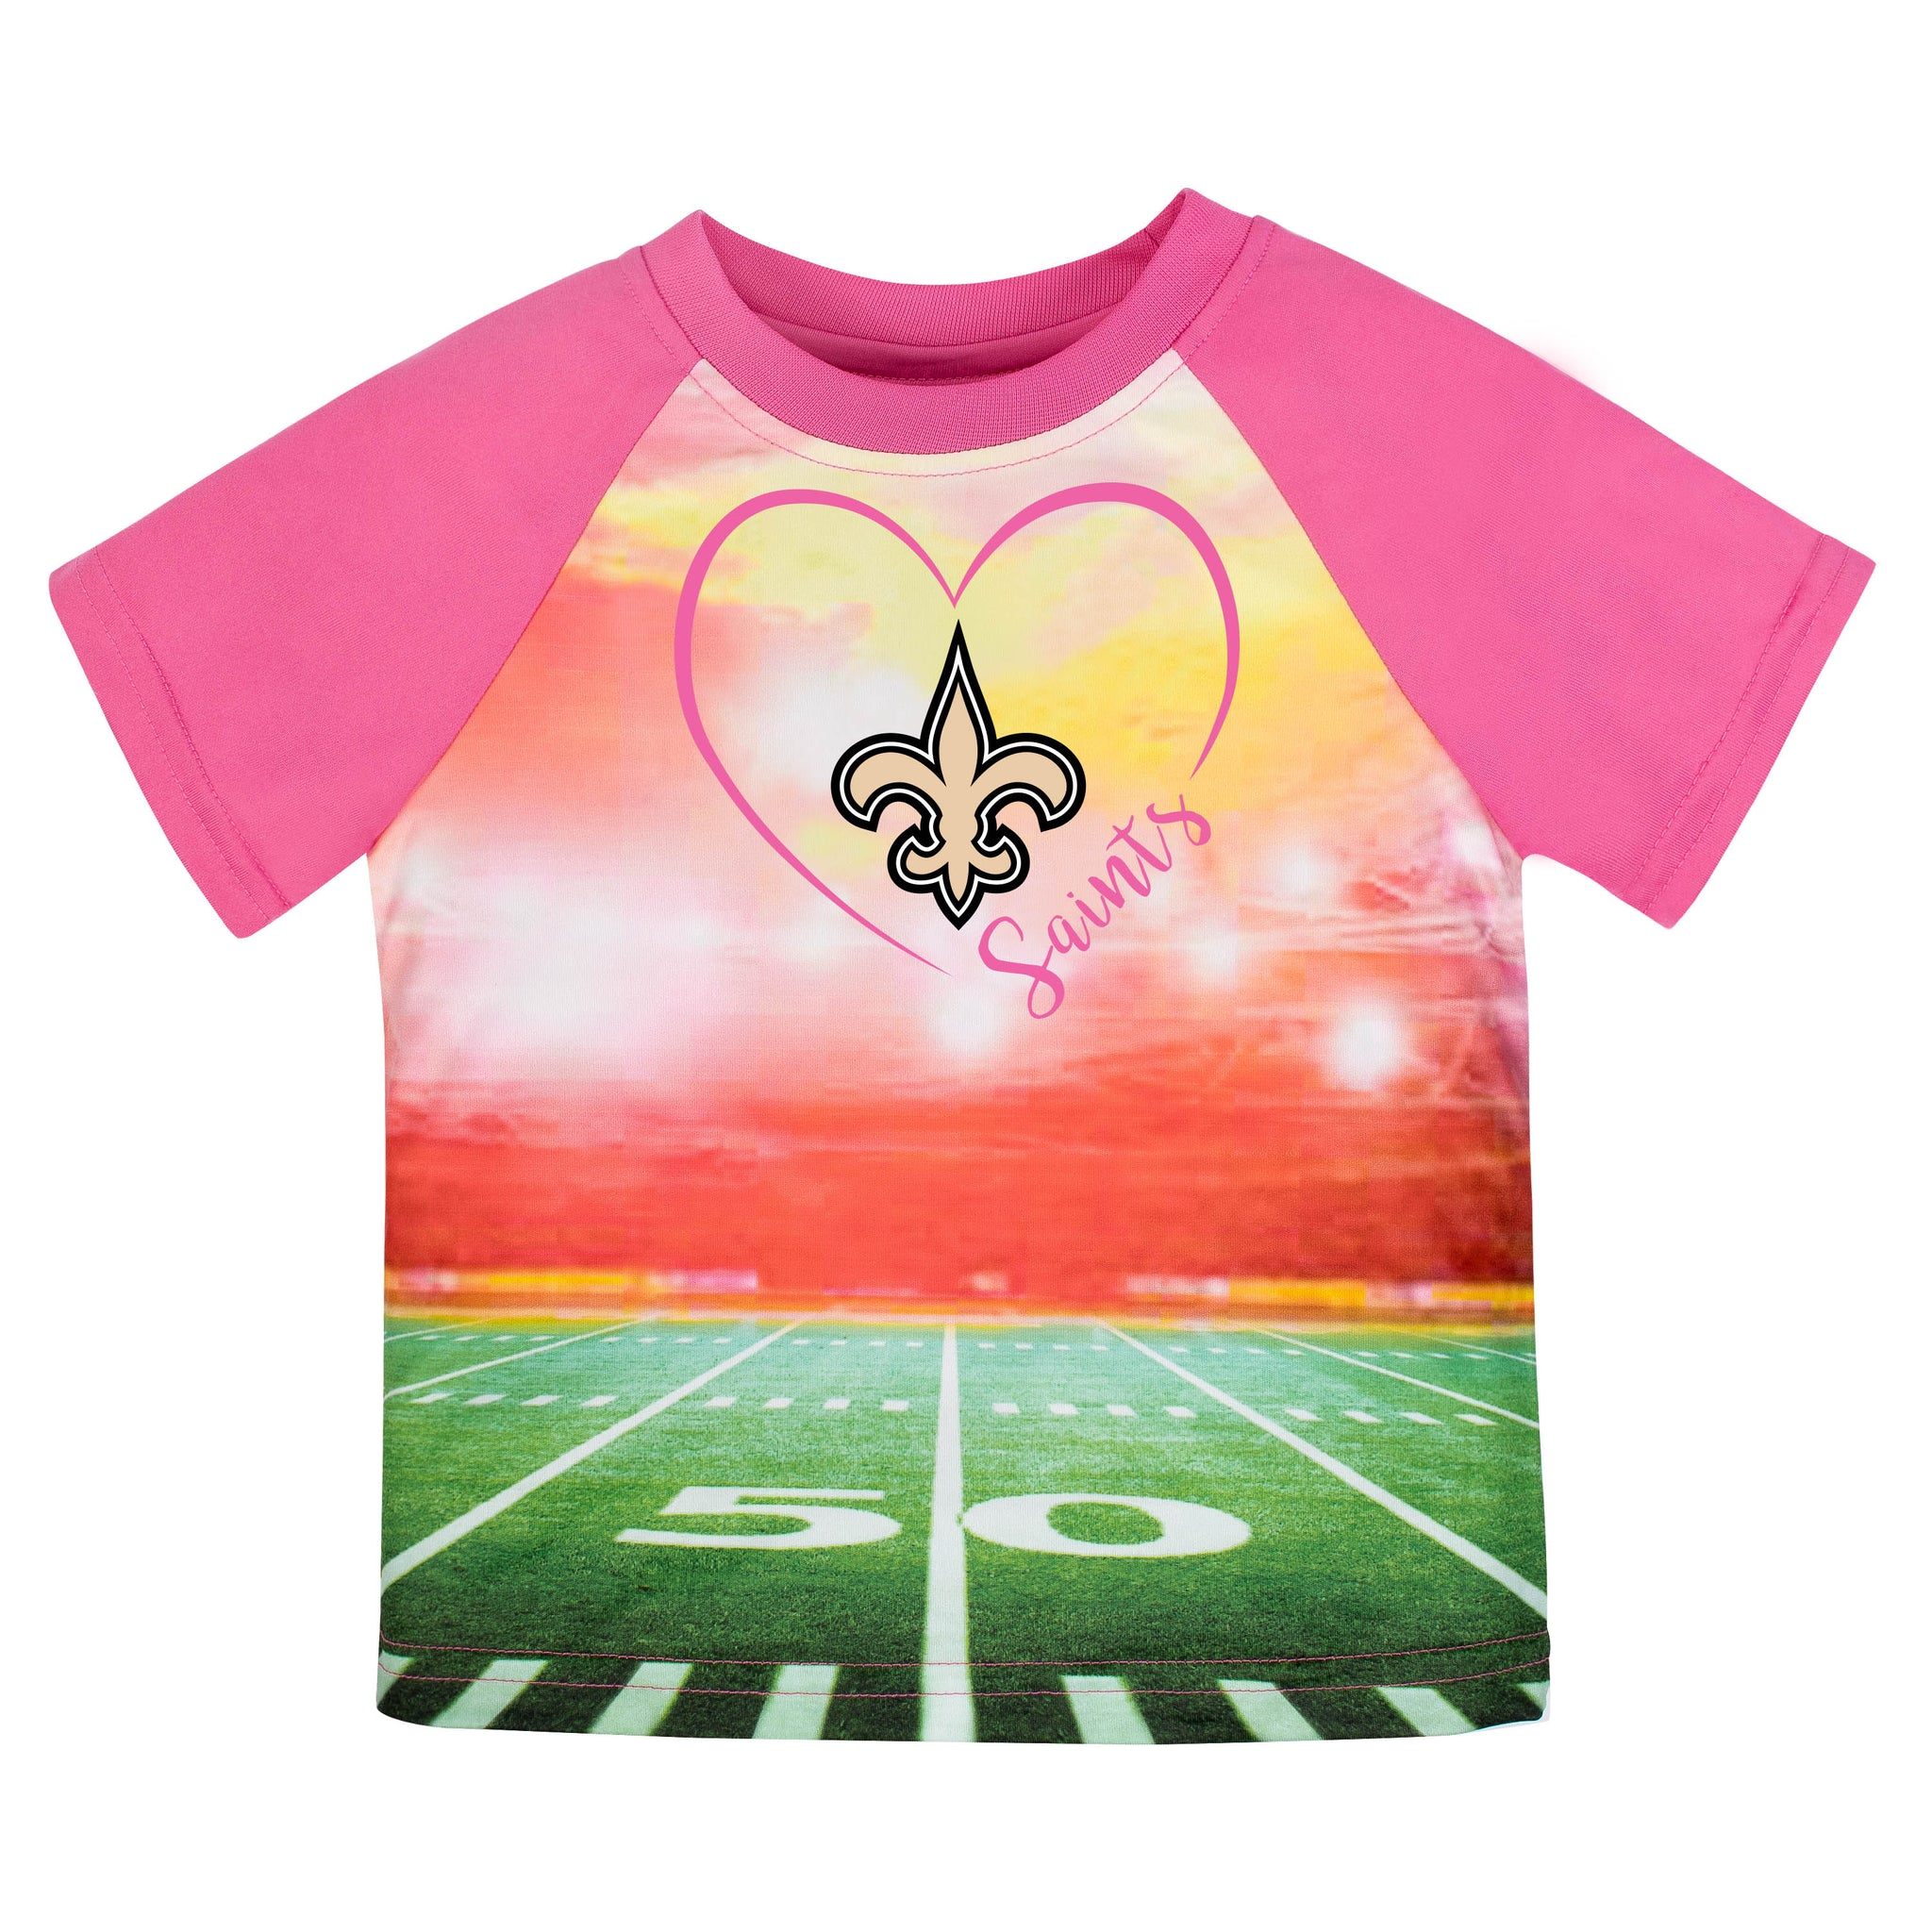 New Orleans Saints Girls Short Sleeve Tee Shirt-Gerber Childrenswear